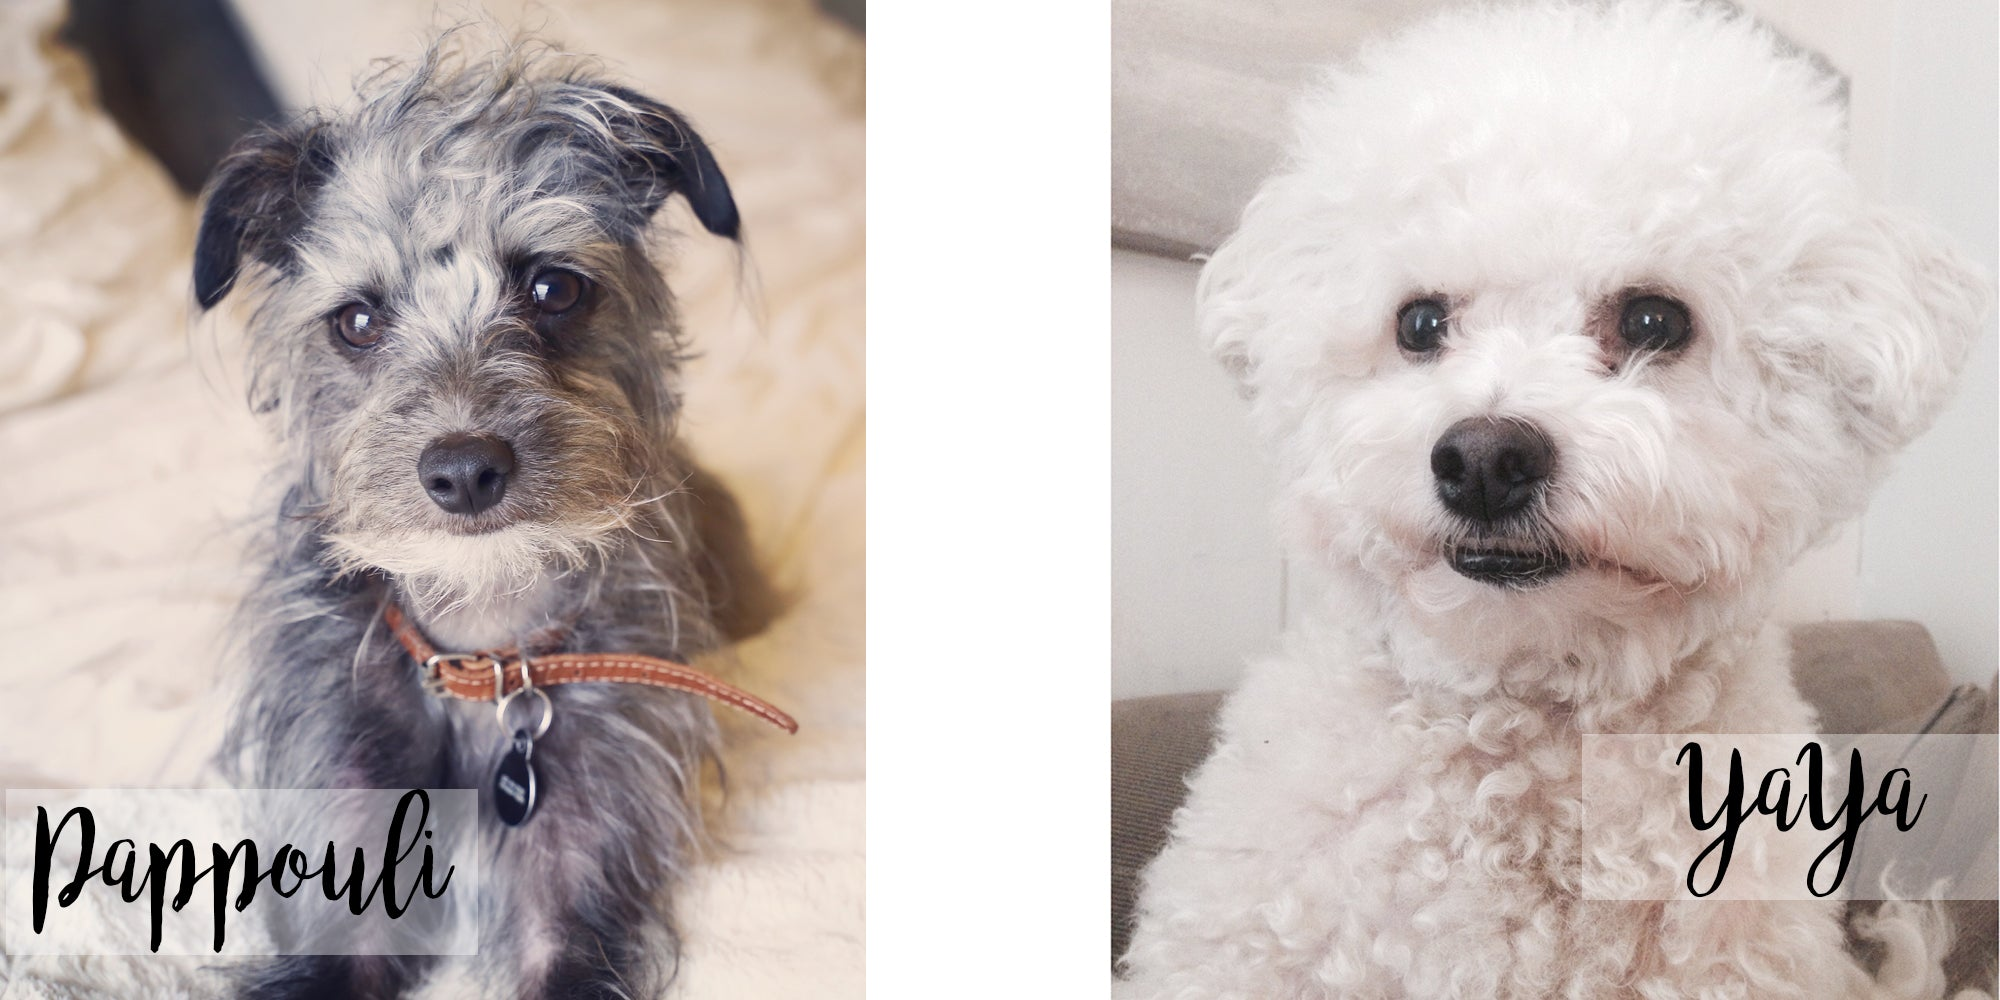 bichon frise and italian greyhound poodle mix ( aka pootalian)